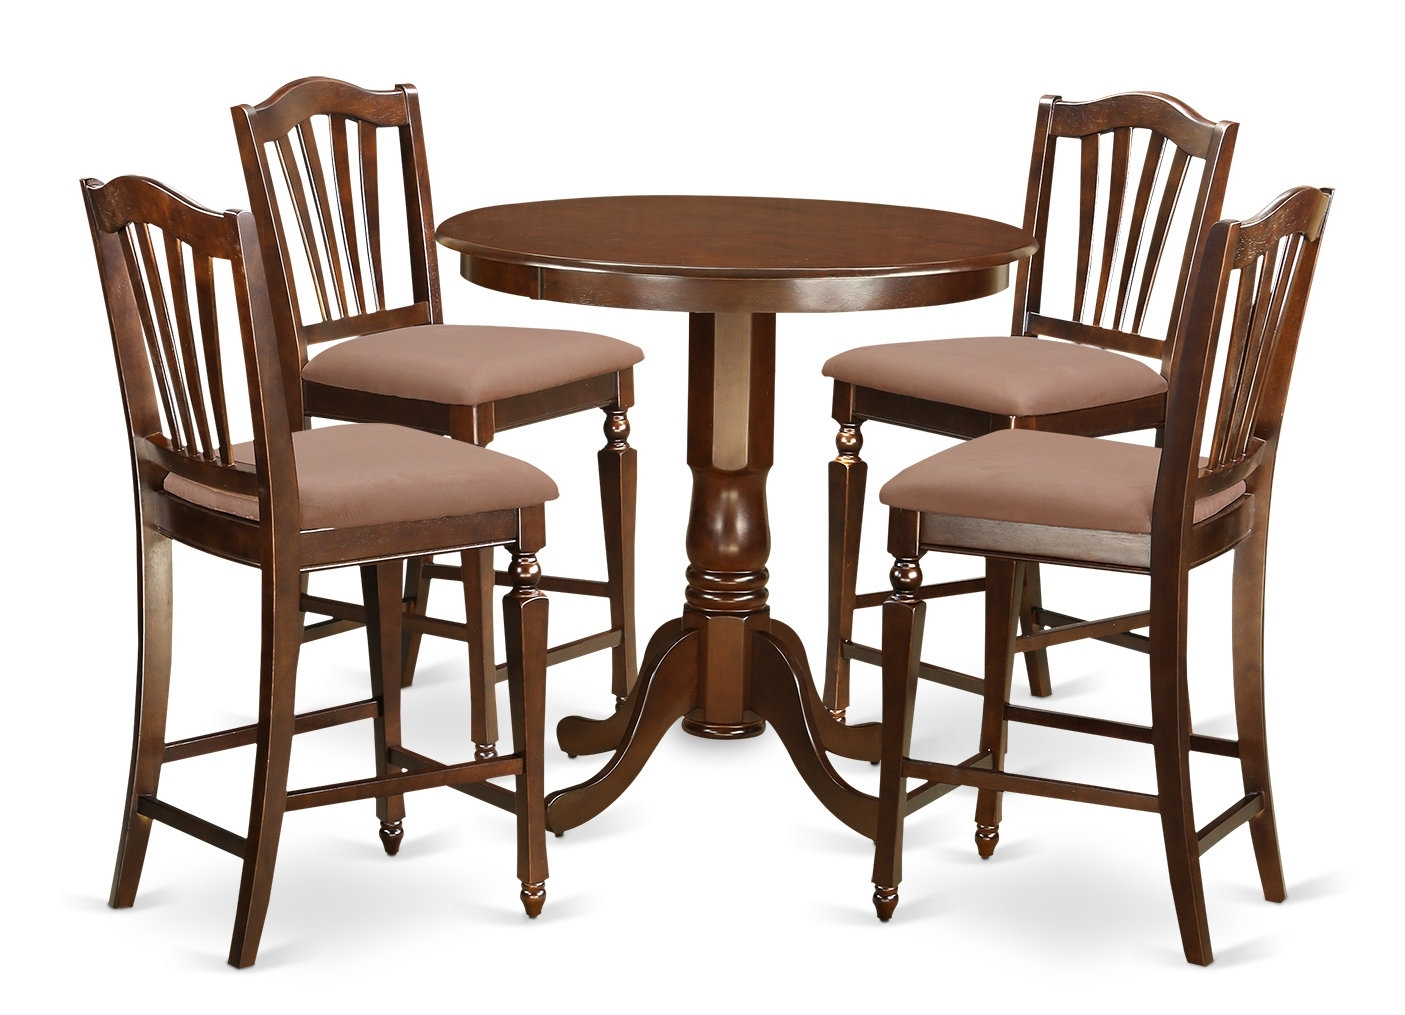 East West Jackson 5 Piece Counter Height Pub Table Set | Wayfair With 2018 Jaxon Grey 6 Piece Rectangle Extension Dining Sets With Bench & Uph Chairs (Photo 13 of 20)